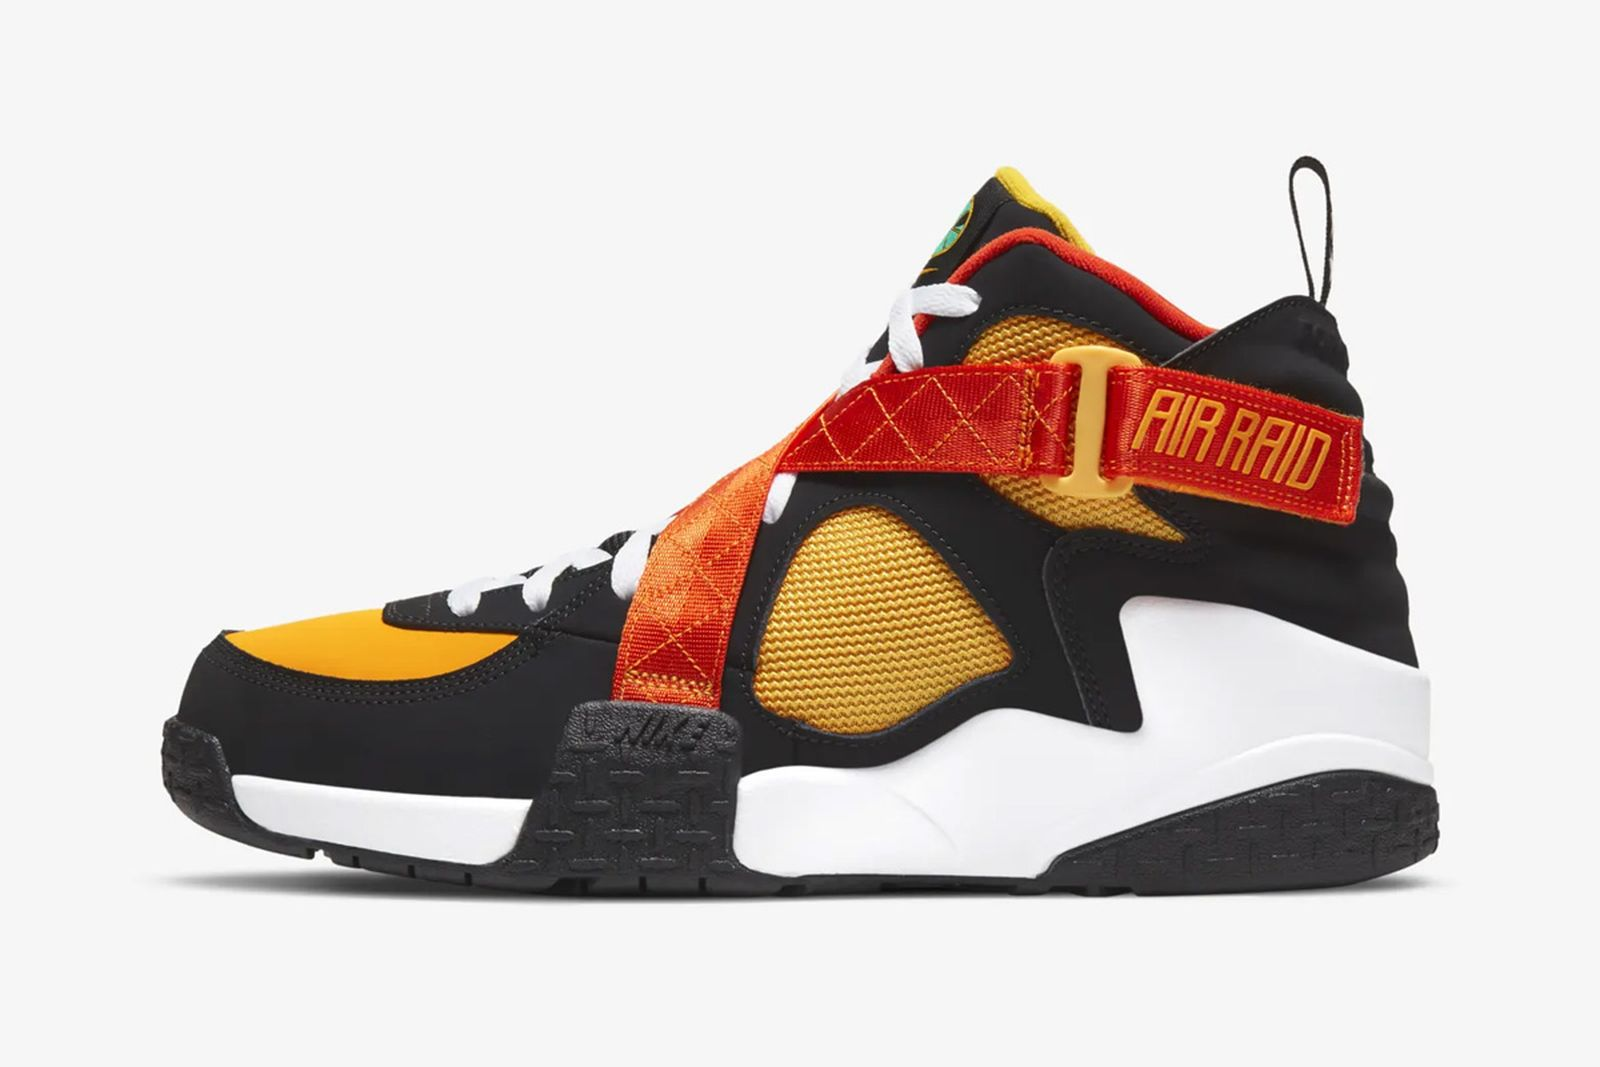 nike-air-force-1-rayguns-release-date-price-04